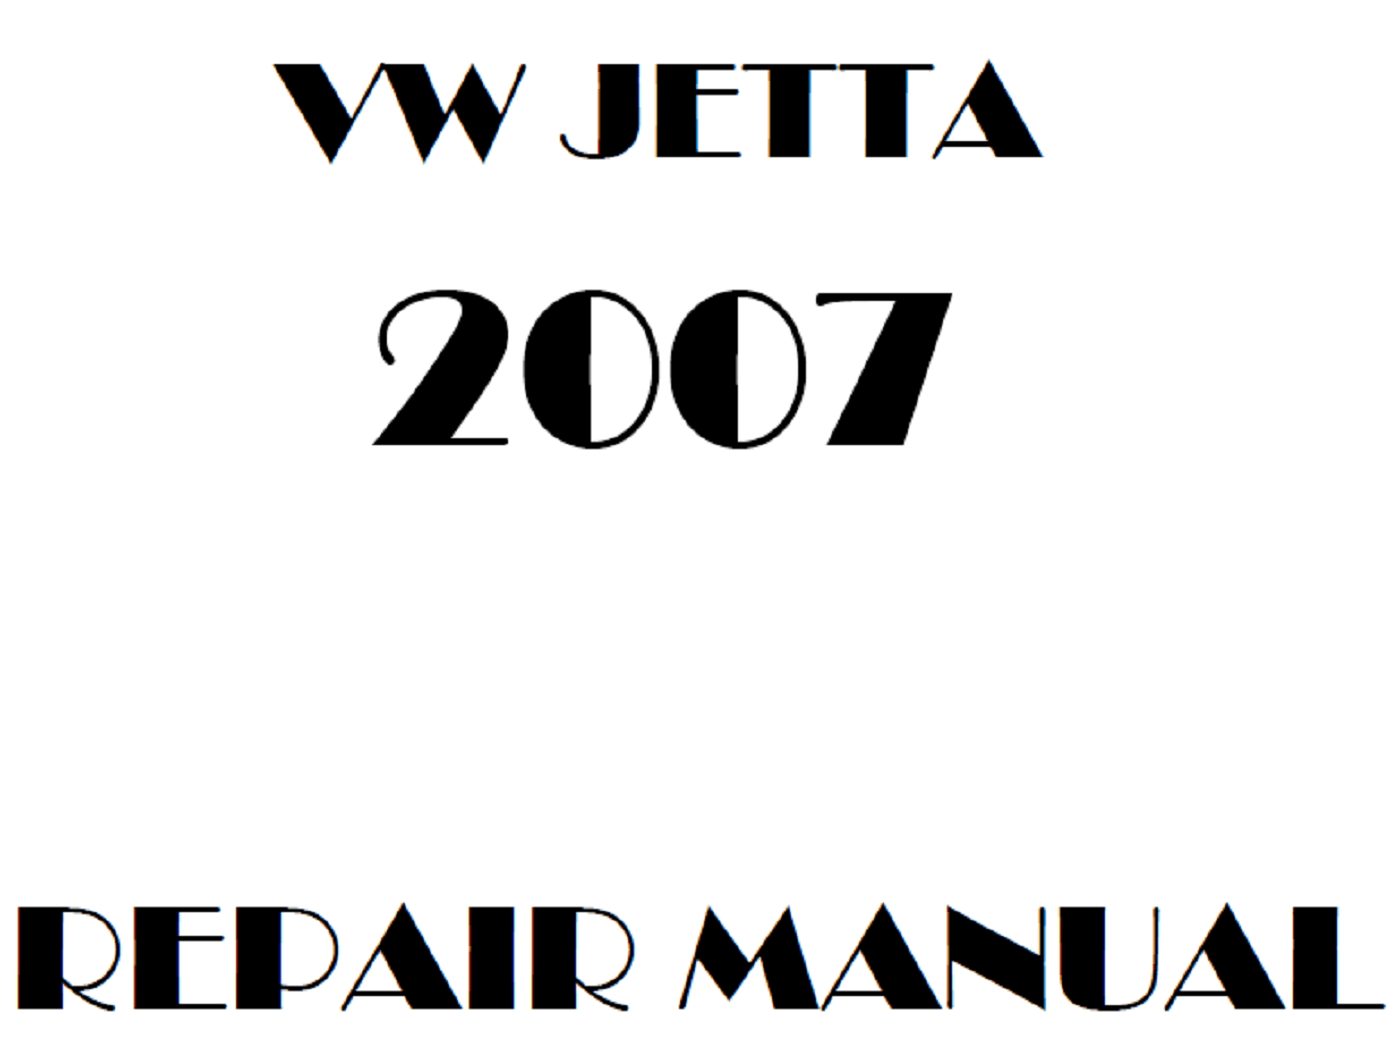 2007 Volkswagen Jetta repair manual